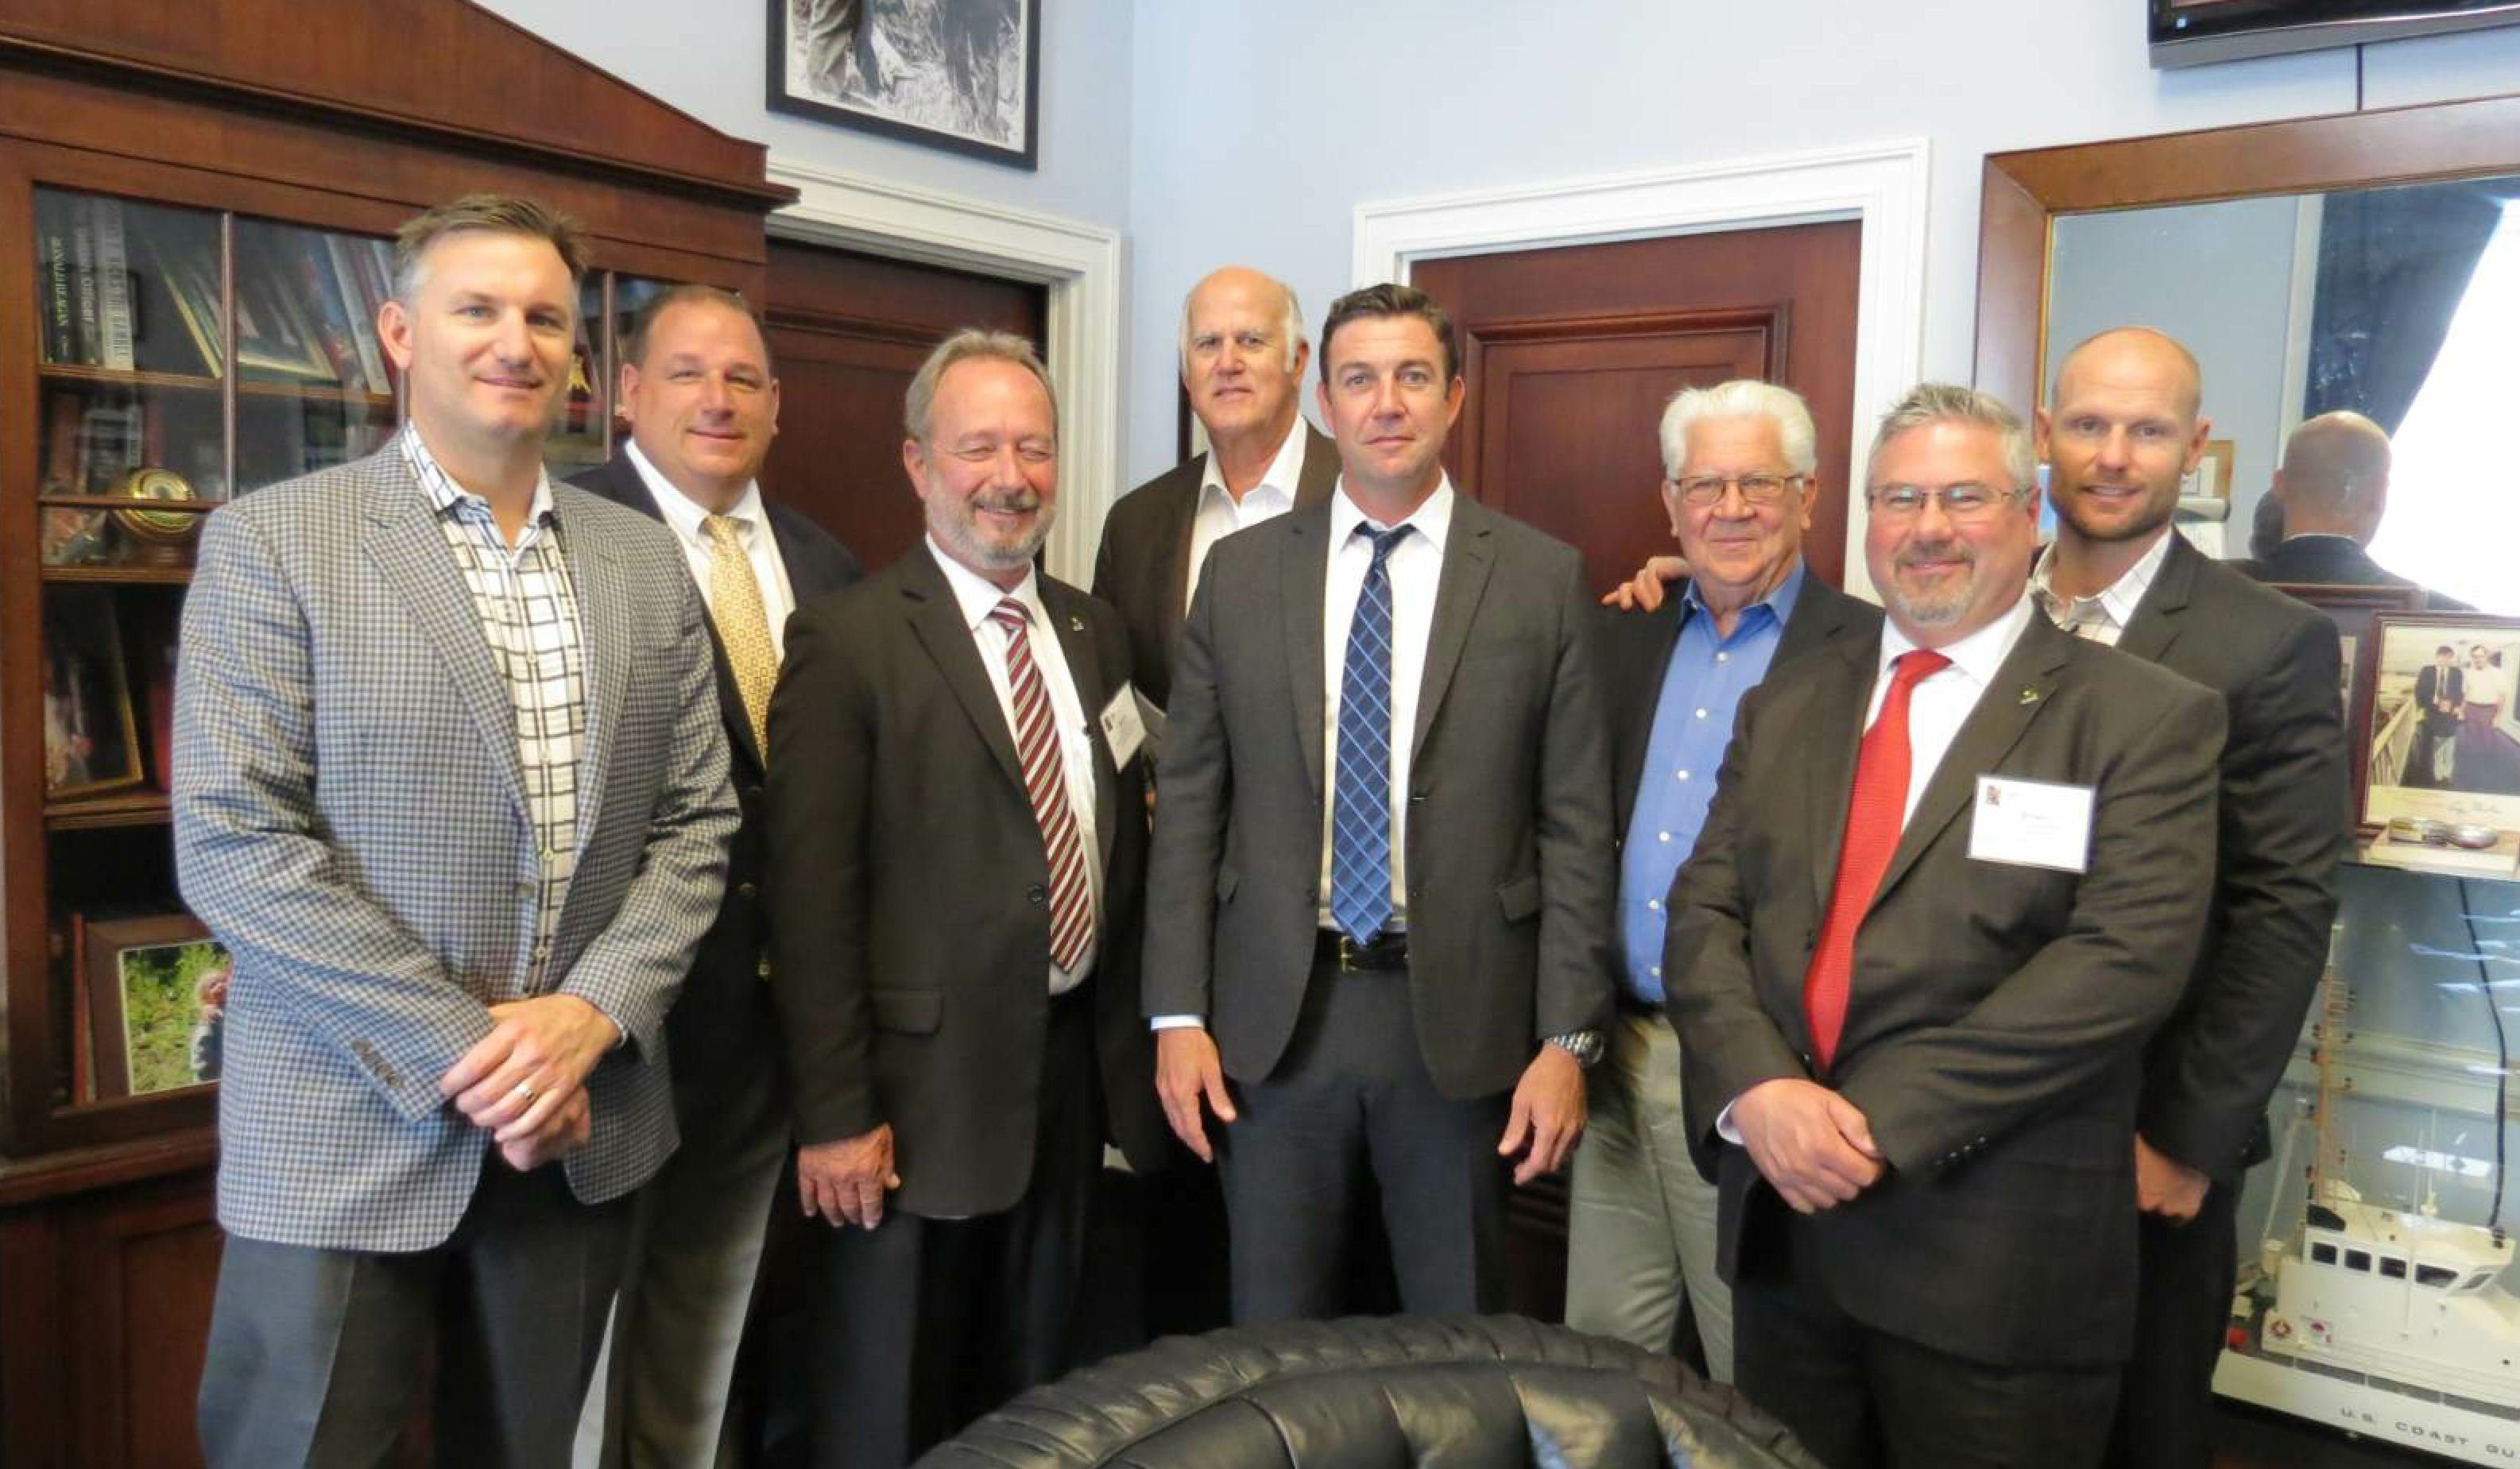 """The CalAPA delegation poses with U.S. Rep. Duncan Hunter (CA-50) during the Transportation Construction Coalition """"fly-in"""" held March 17 and 18, 2017, in Washington, D.C. Pictured, from left to right, are Don L. Daley III, ATP General Engineering (CalAPA Legislative Committee Chair); Scott Metcalf, Ergon; Steve Ward, Pavement Recycling Systems; Don L. Daley Jr., California Commercial Asphalt; Hunter; Len Nawrocki, Valero (CalAPA 2017 PAC Committee Chair); Brian Handshoe, Kenco Engineering Inc. (2018 CalAPA PAC Committee Chair); and John Greenwood, California Commercial Asphalt (CalAPA Immediate Past Chairman). Photo by the California Asphalt Pavement Association (CalAPA) – used with permission."""